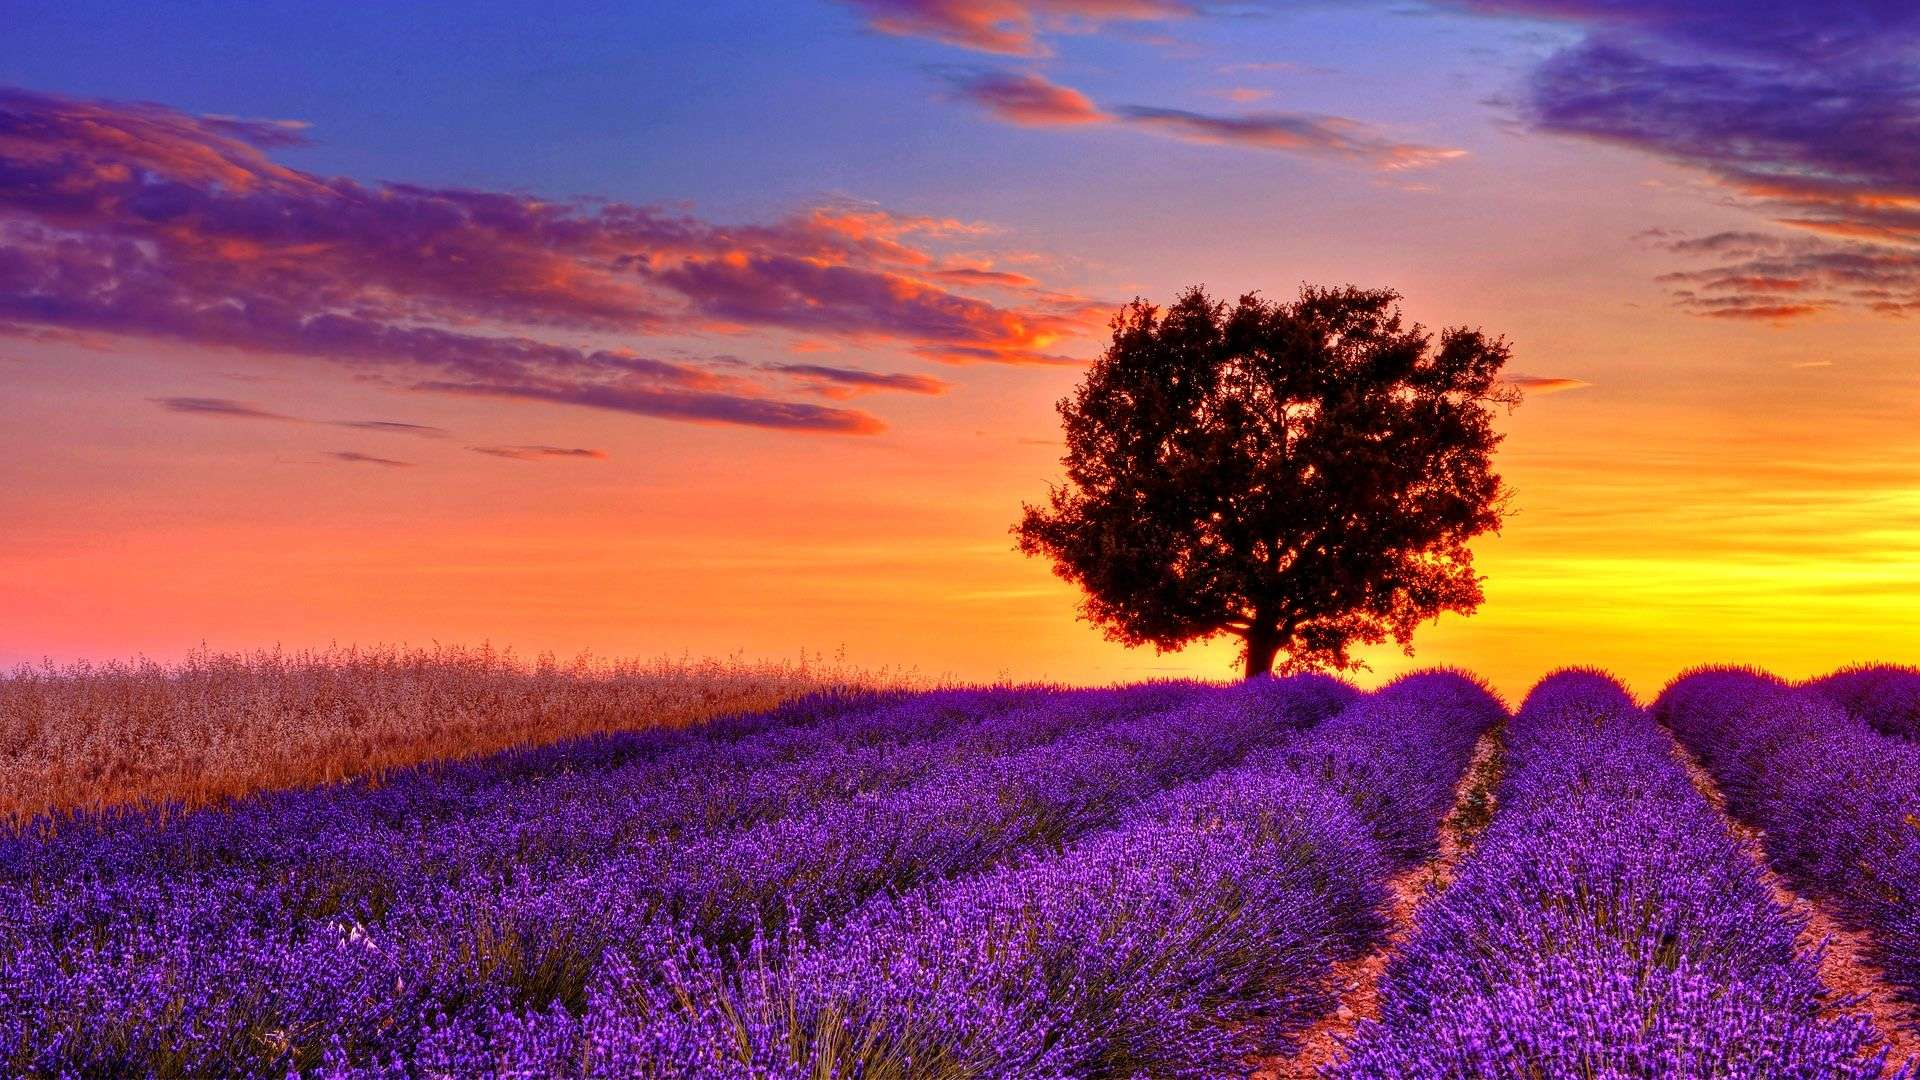 lavender-flower-field-sunset-high-resolution-wallpaper-for-desktop